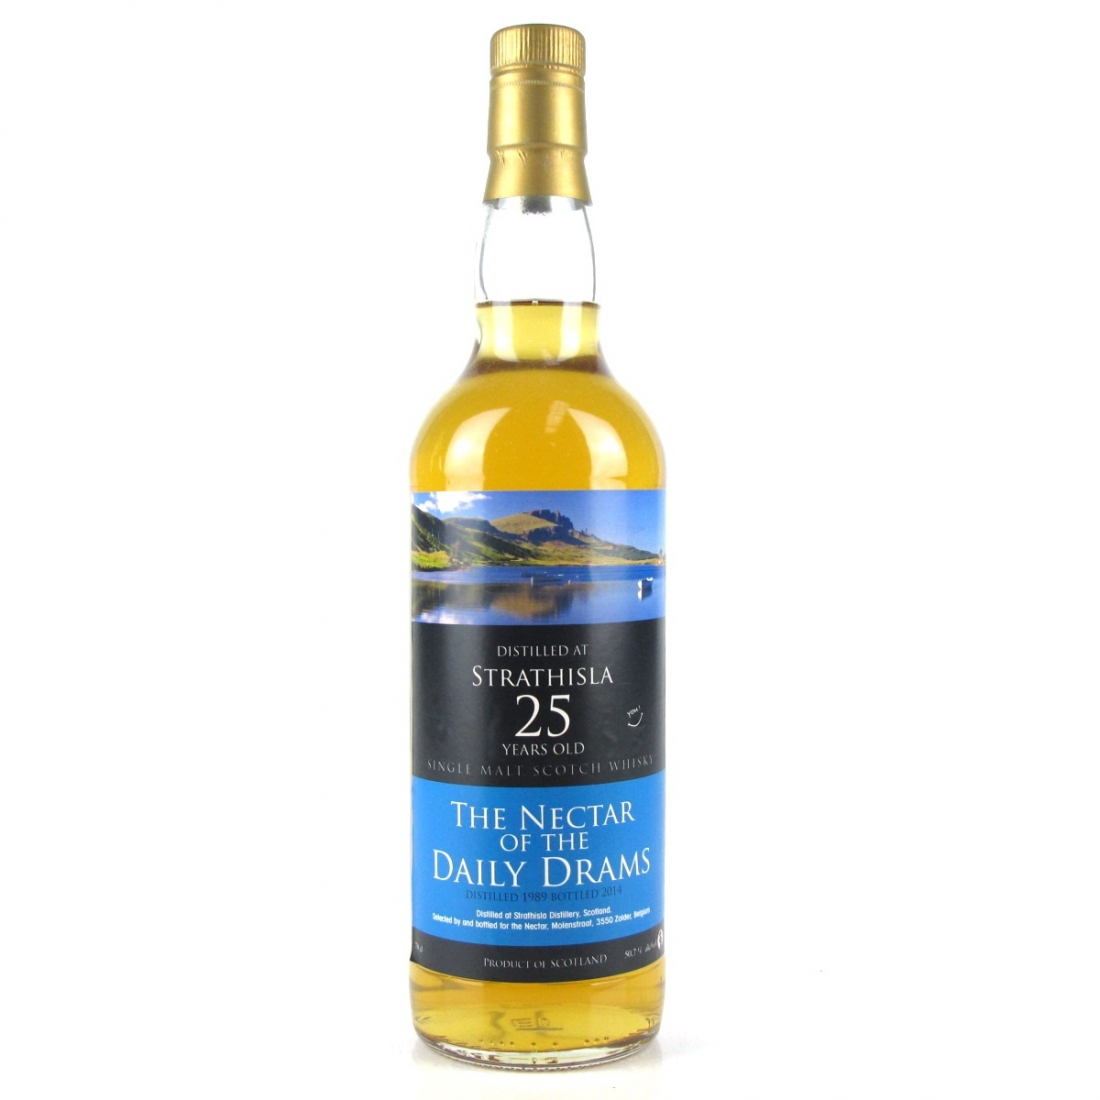 Strathisla 1989 Nectar of the Daily Drams 25 Year Old